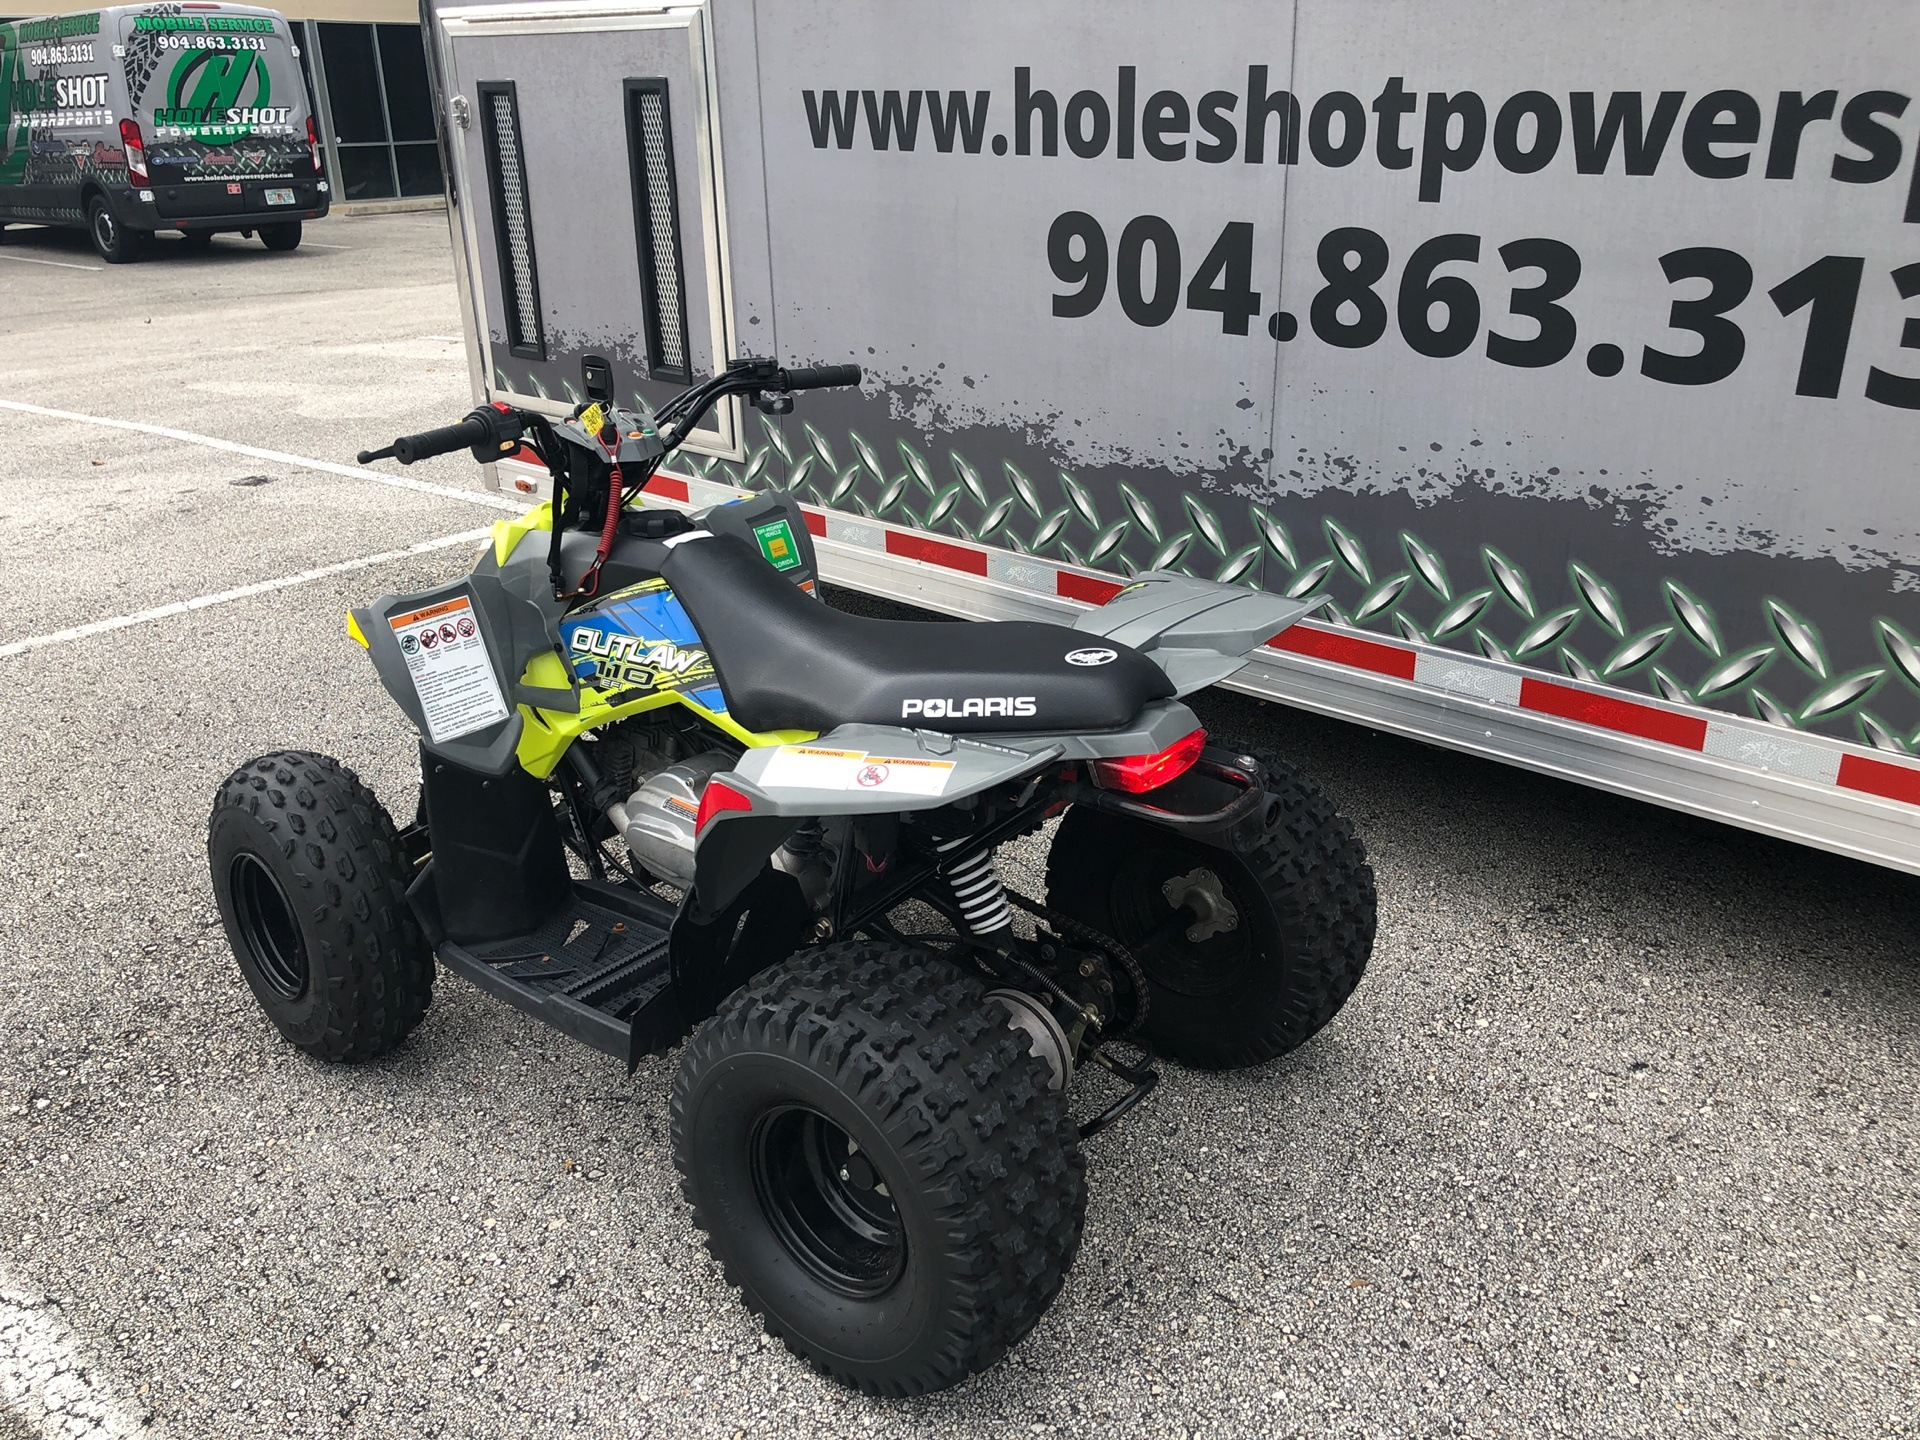 2020 Polaris Outlaw 110 in Fleming Island, Florida - Photo 4